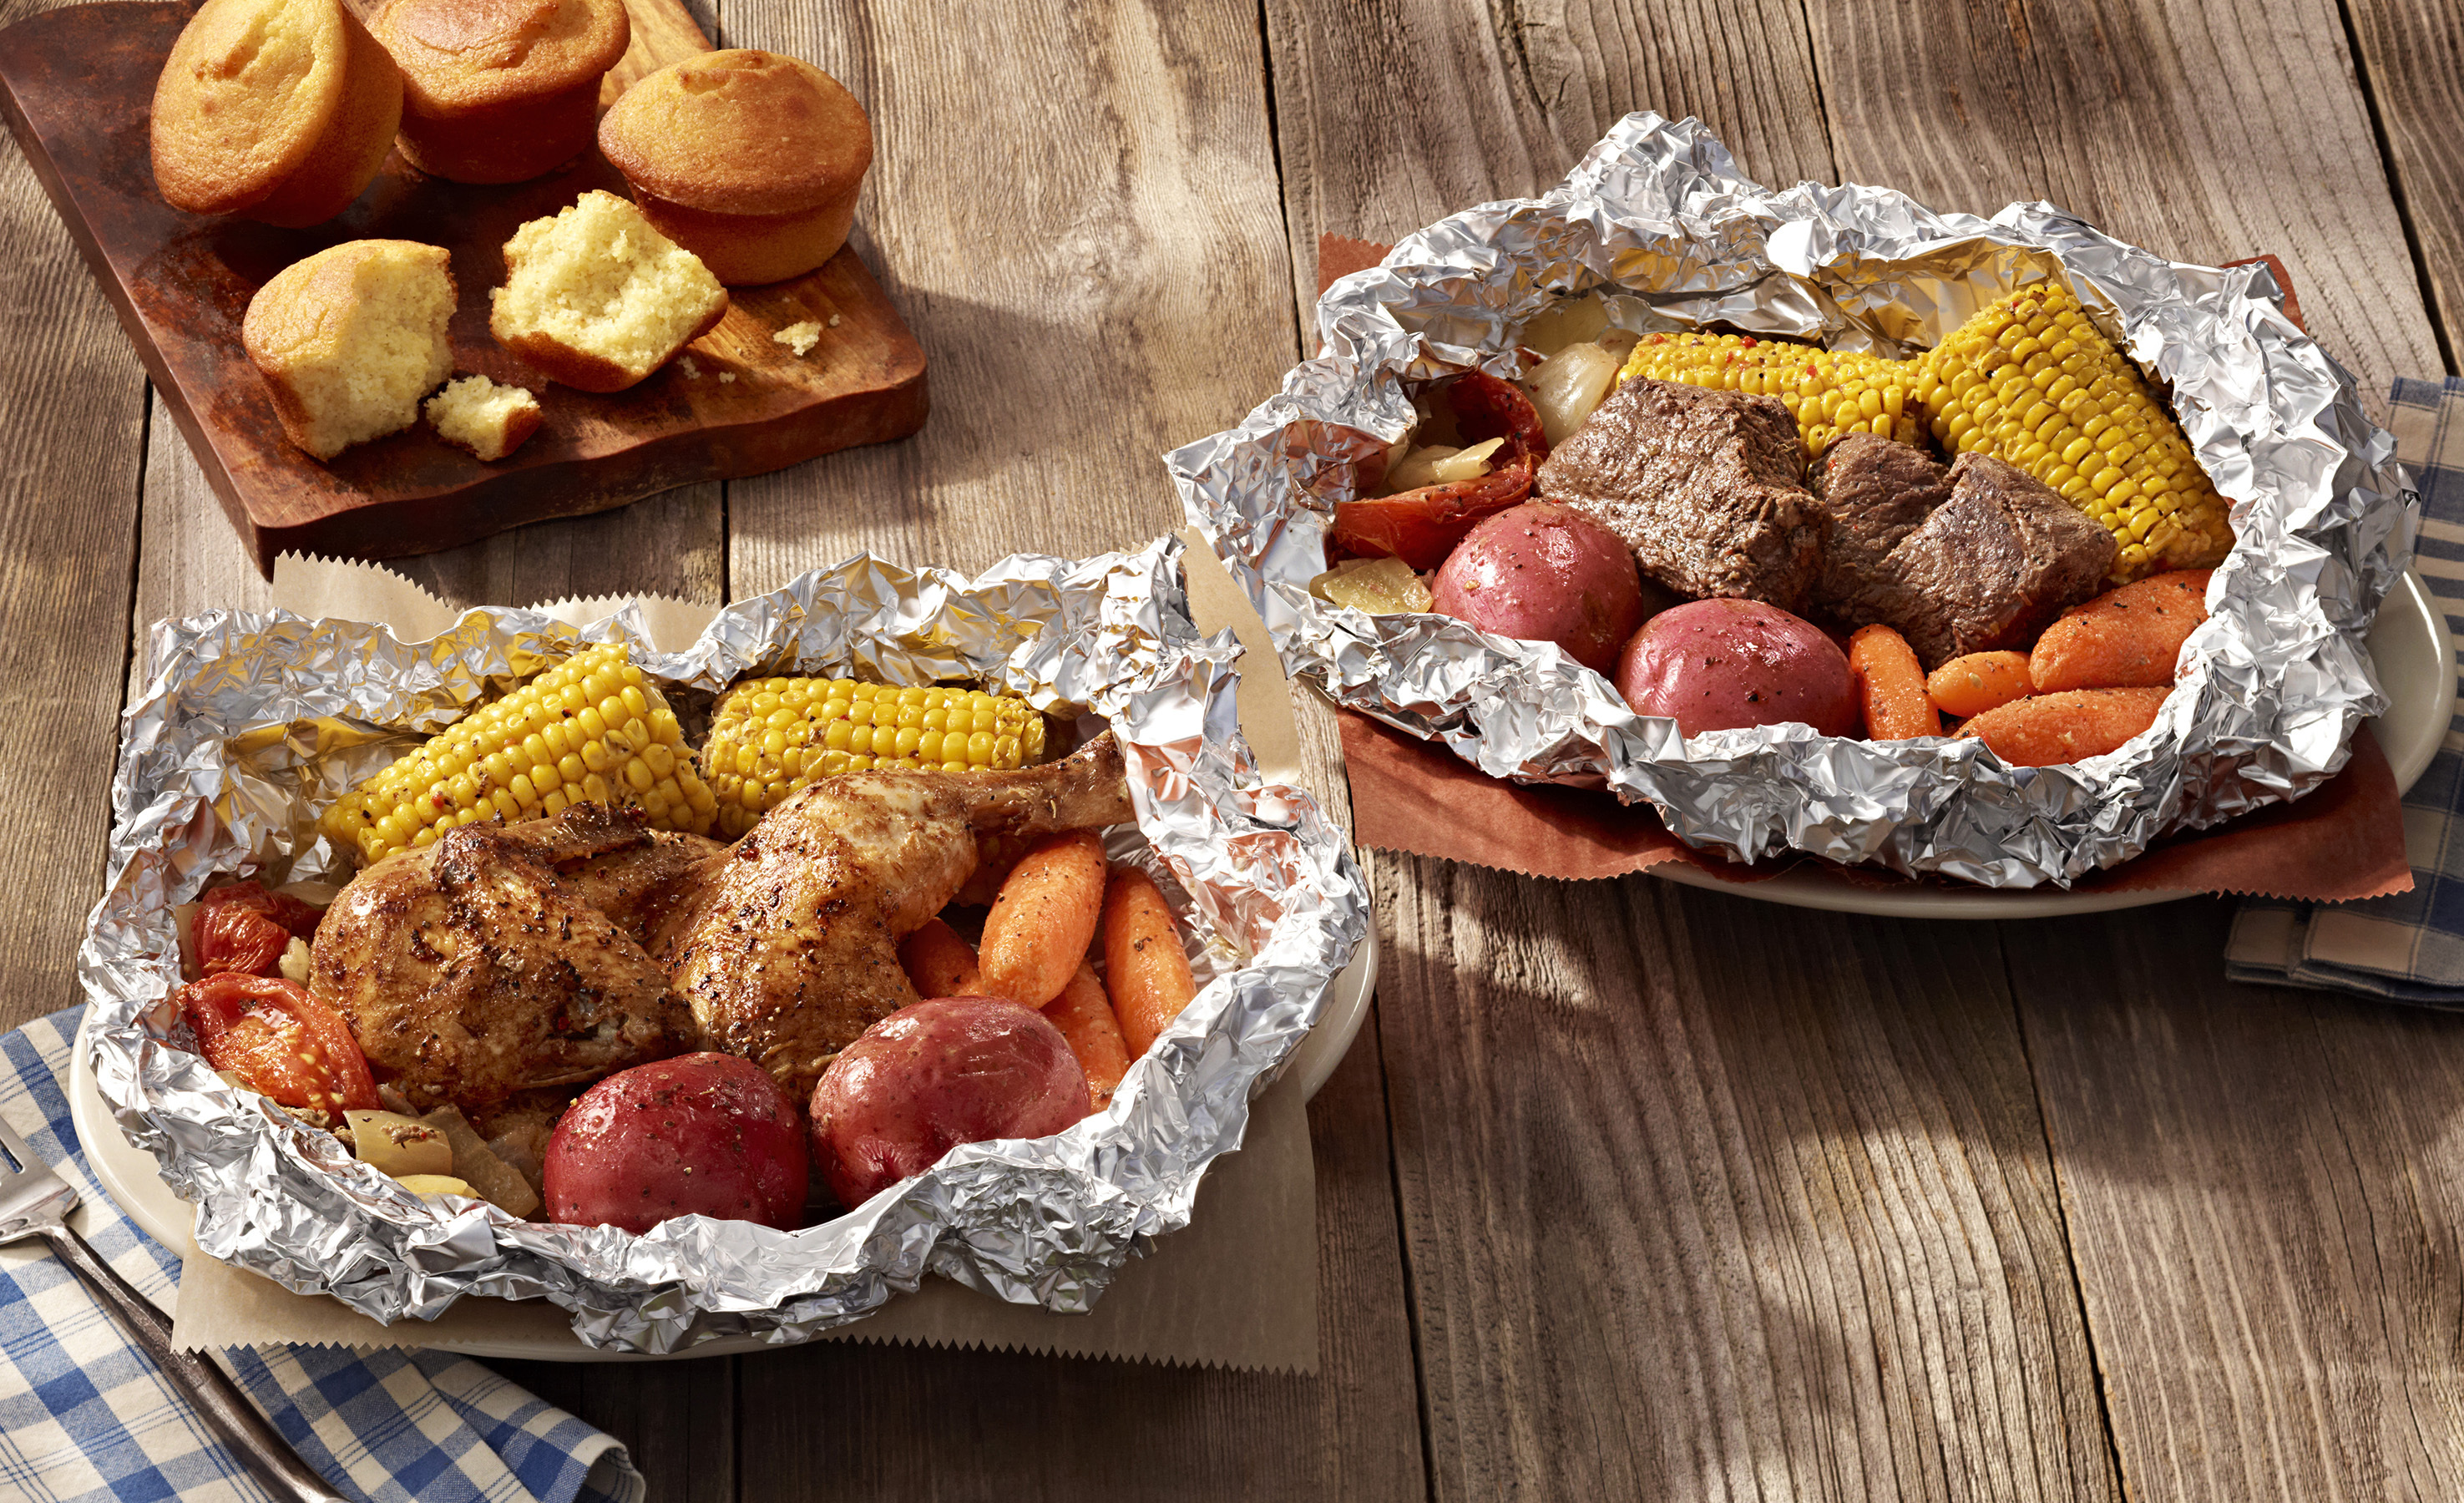 They Re Back Cracker Barrel Campfire Meals Heat Up Excitement Again Business Wire